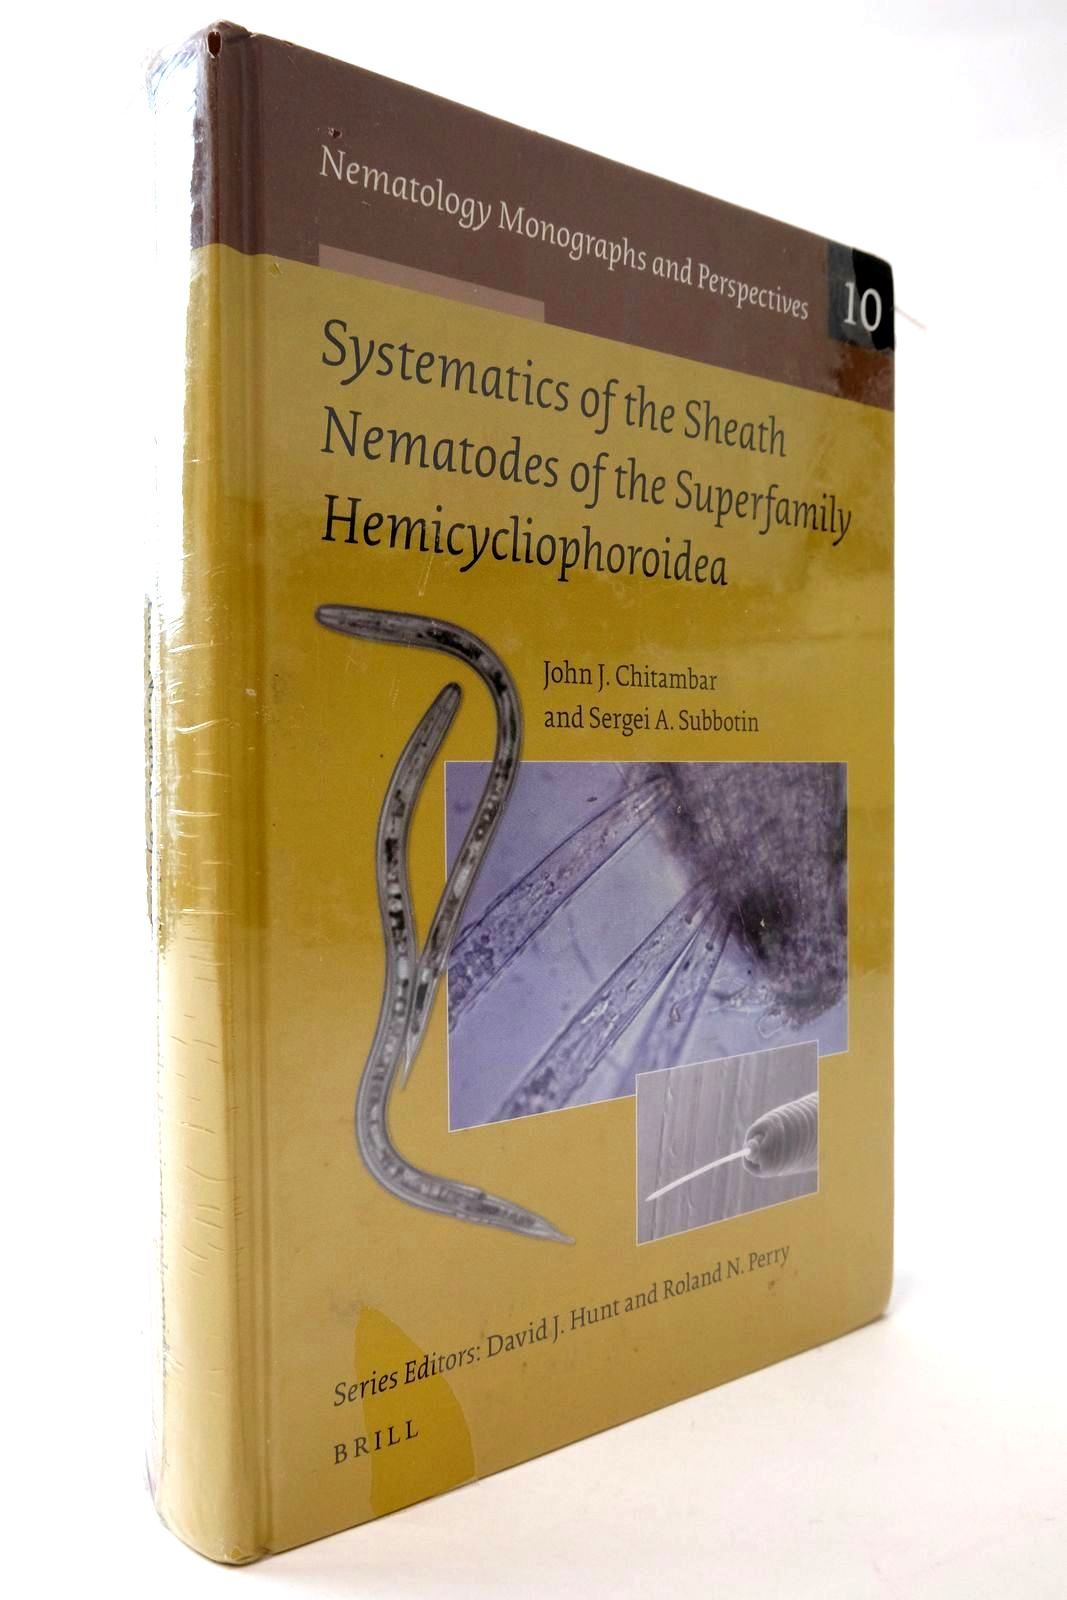 Photo of SYSTEMATICS OF THE SHEATH NEMATODES OF THE SUPERFAMILY HEMICYCLIOPHOROIDEA- Stock Number: 2135505